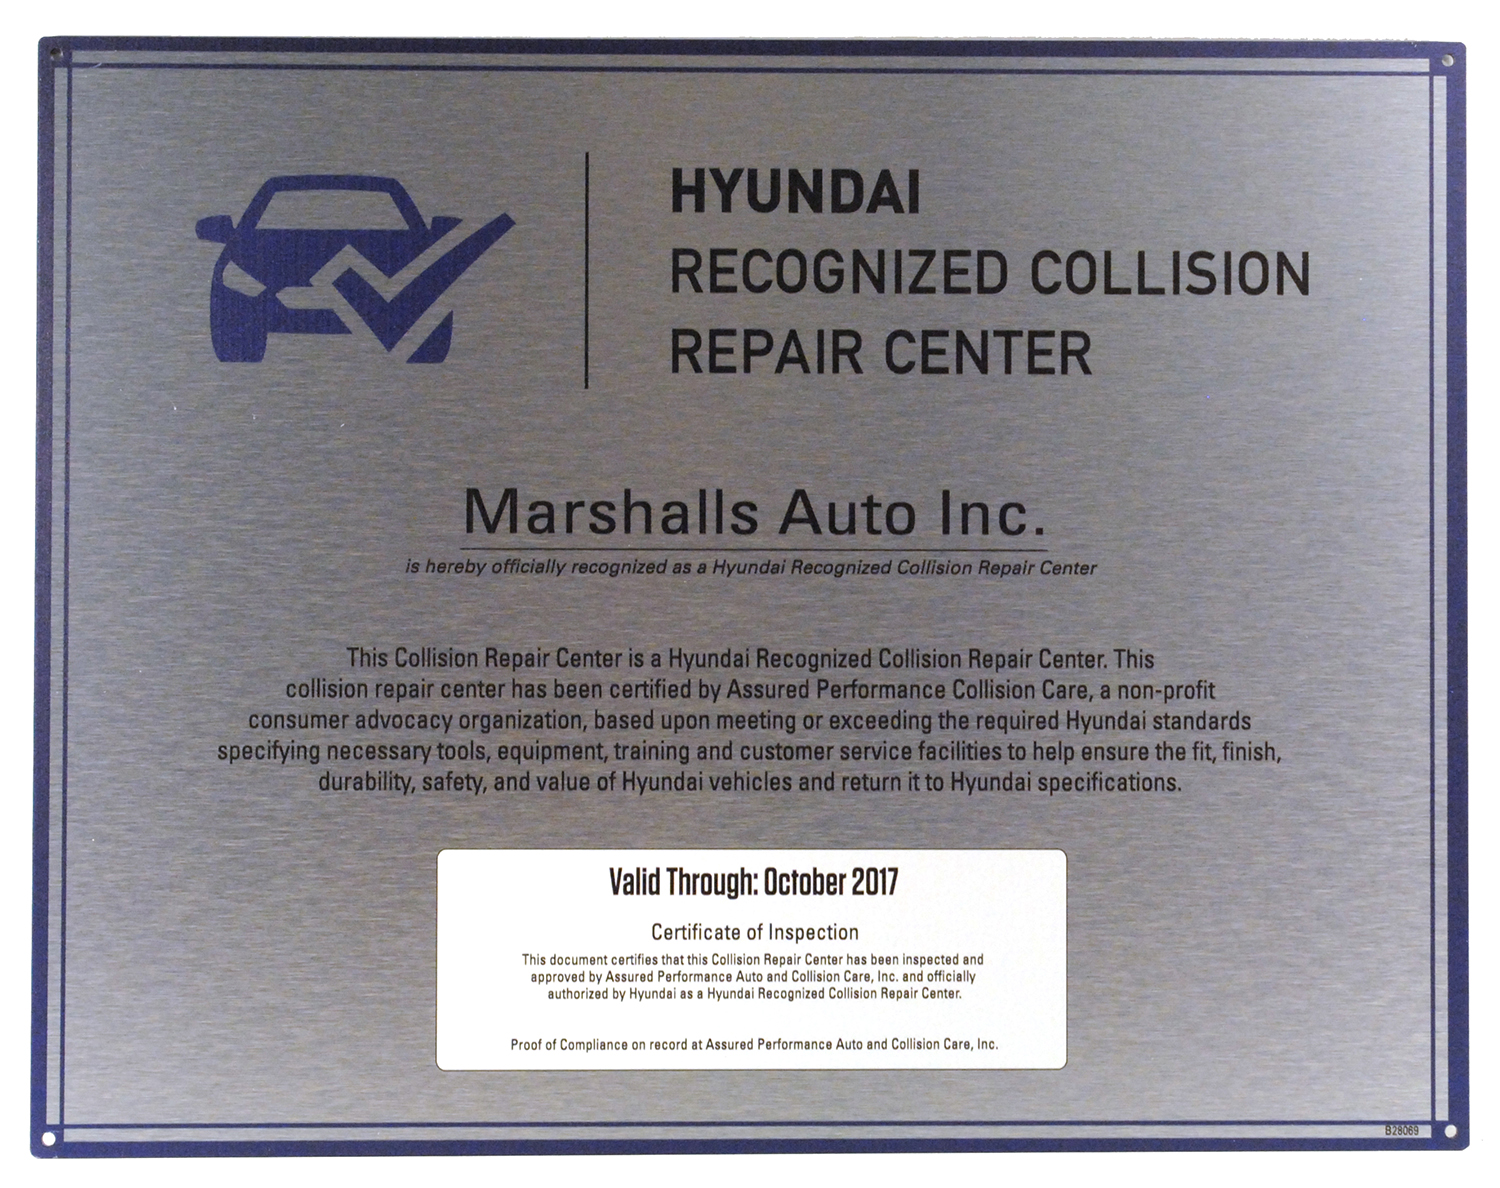 Hyundai Recognized Collision Repair